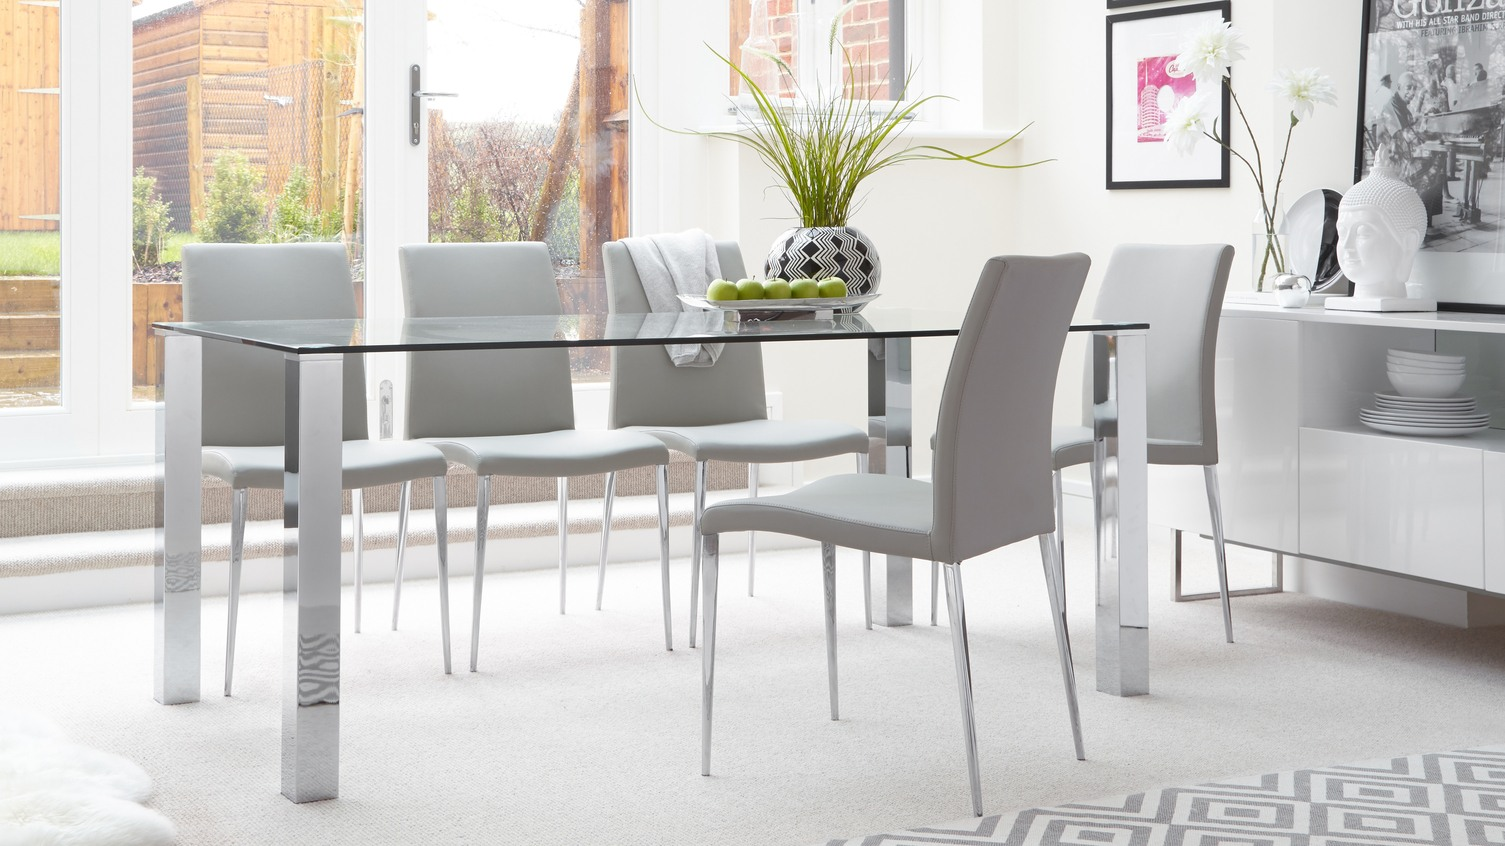 Set Multicolored Contemporary Dining Chairs Around Glass Table Set On . Full resolution  image, nominally Width 1505 Height 846 pixels, image with #767A31.